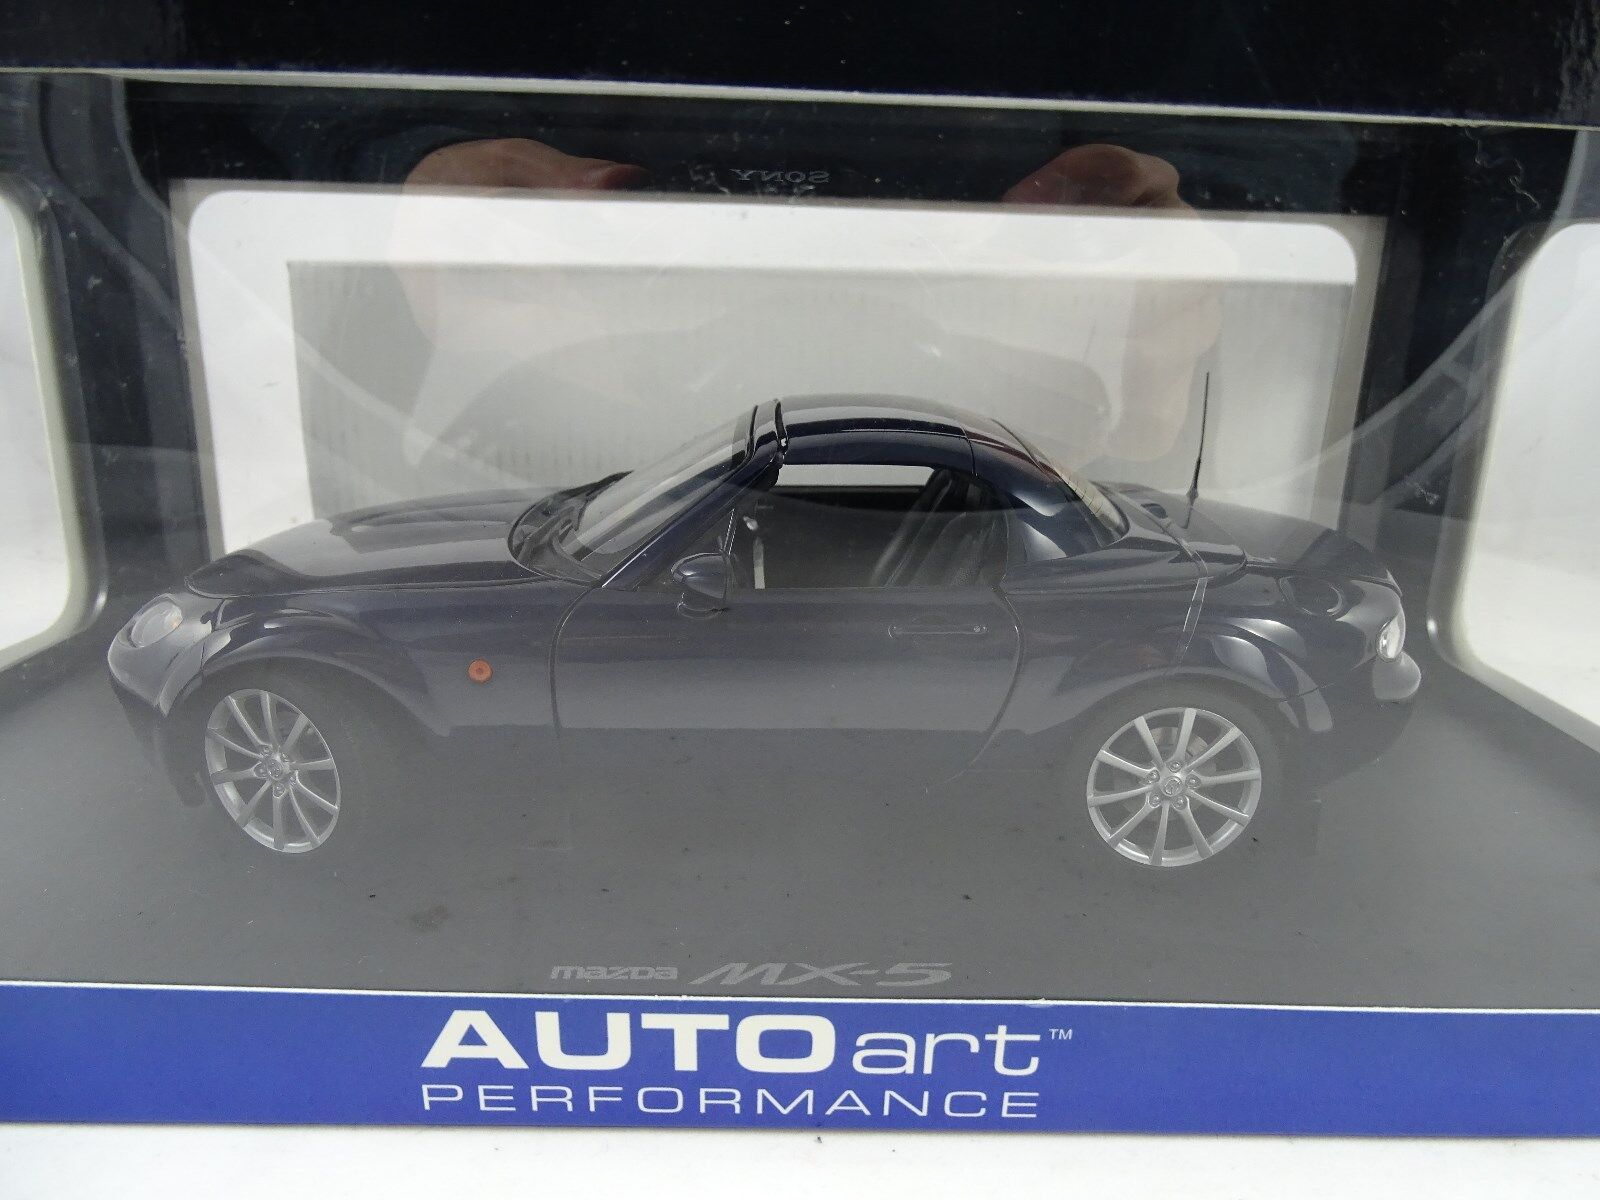 1 18 Autoart Mazda Mx-5 Stormy bluee with Folding Roof - Rarity §